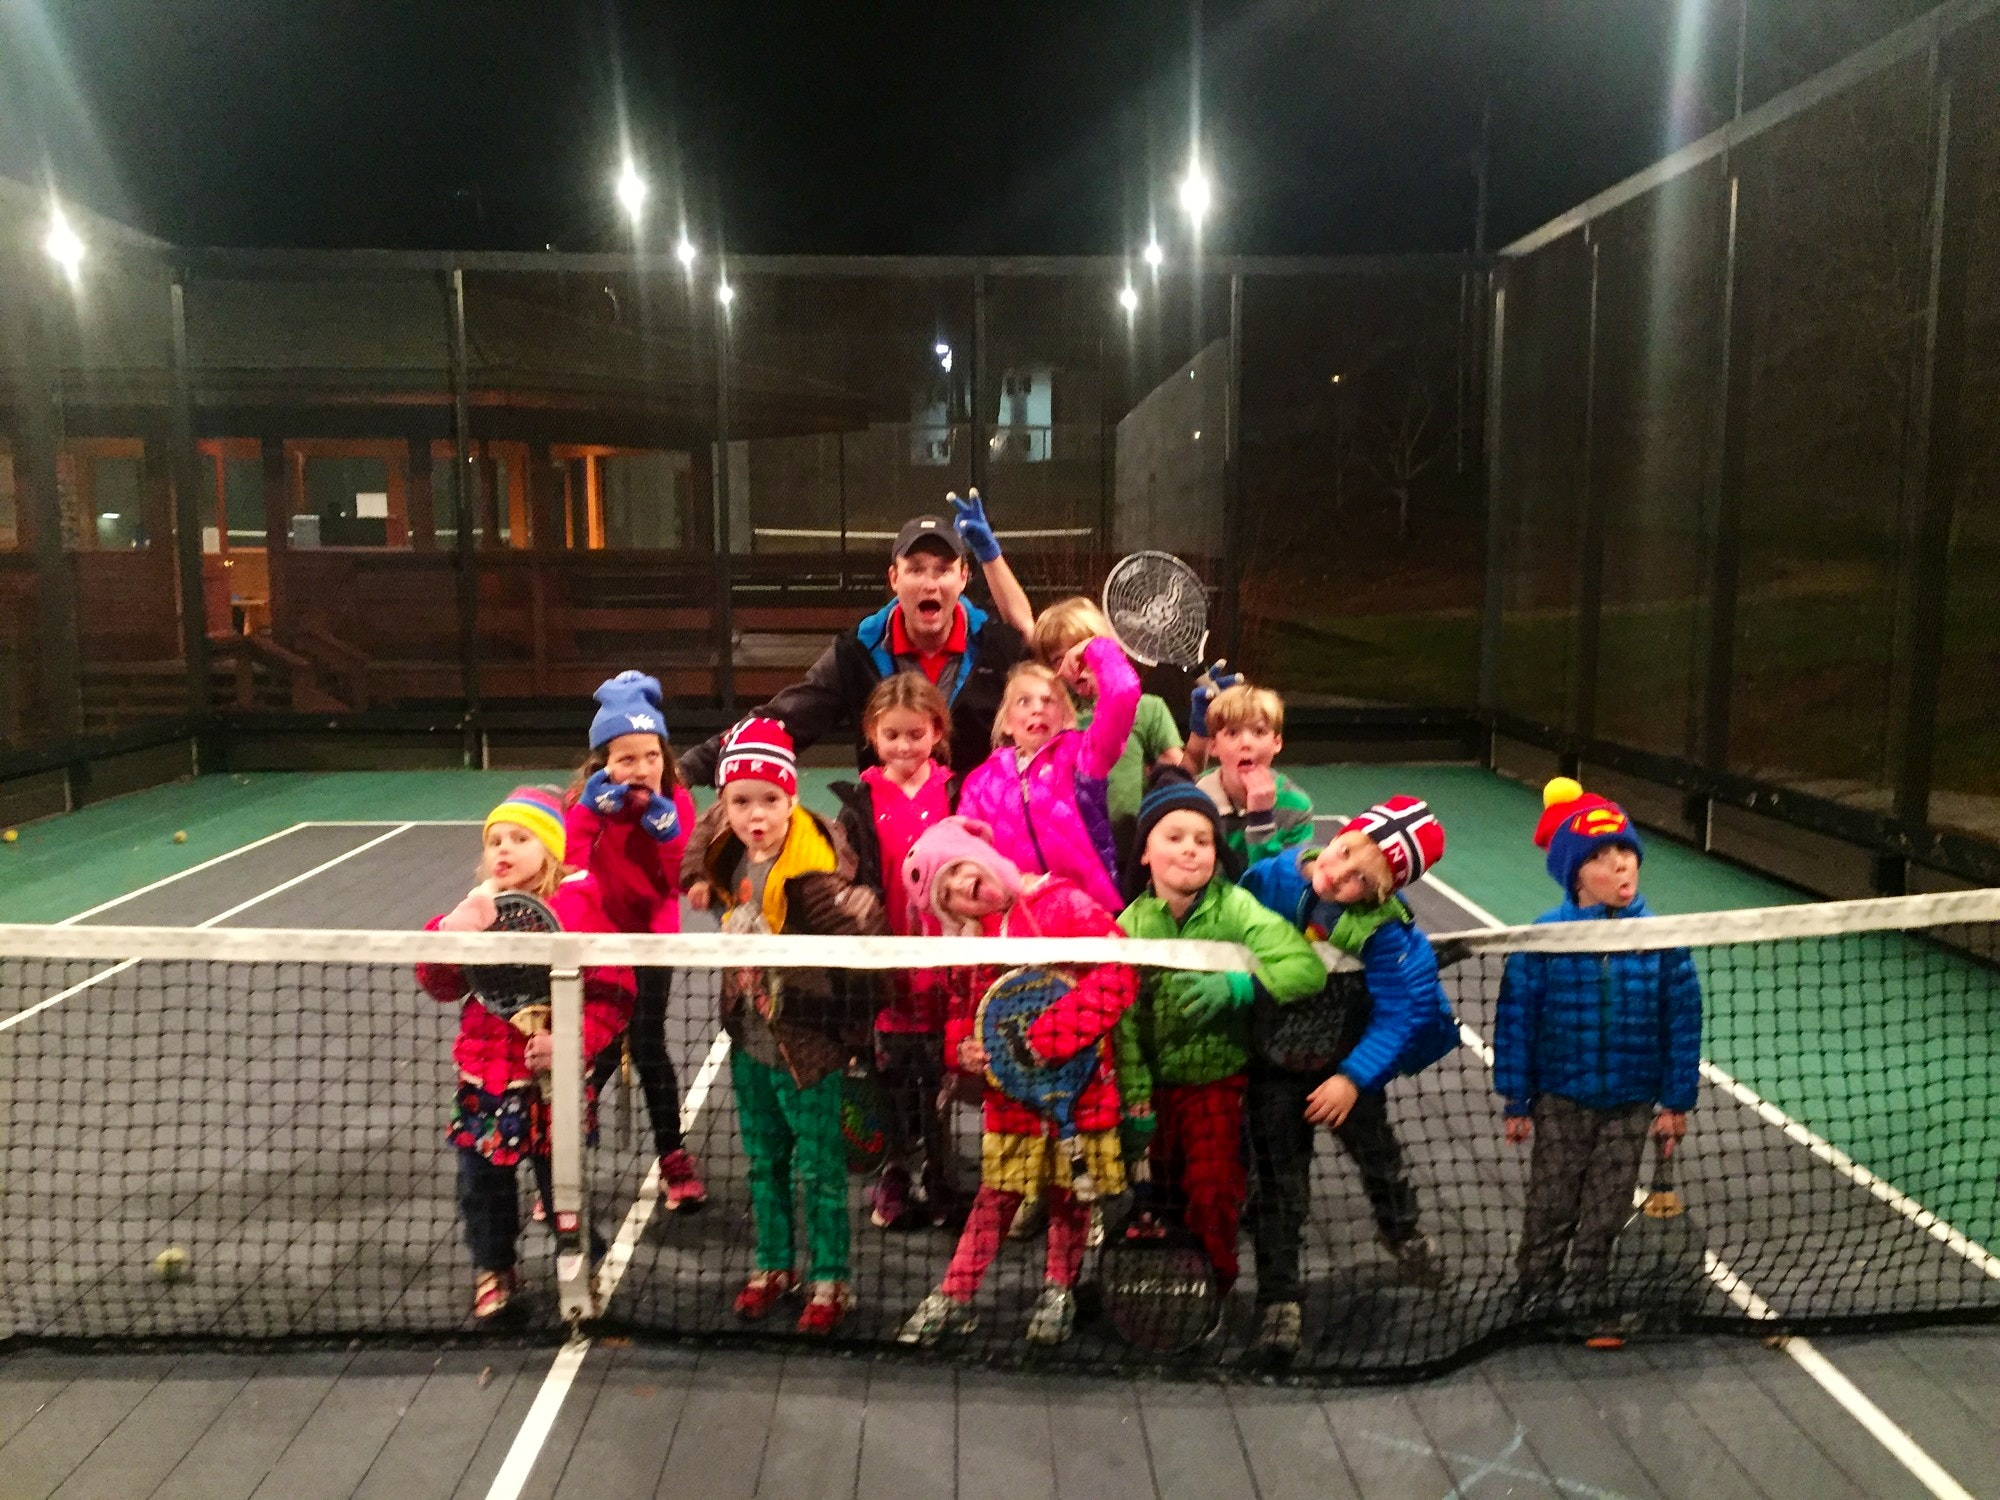 Andrew C. teaches tennis lessons in St. Louis, MO